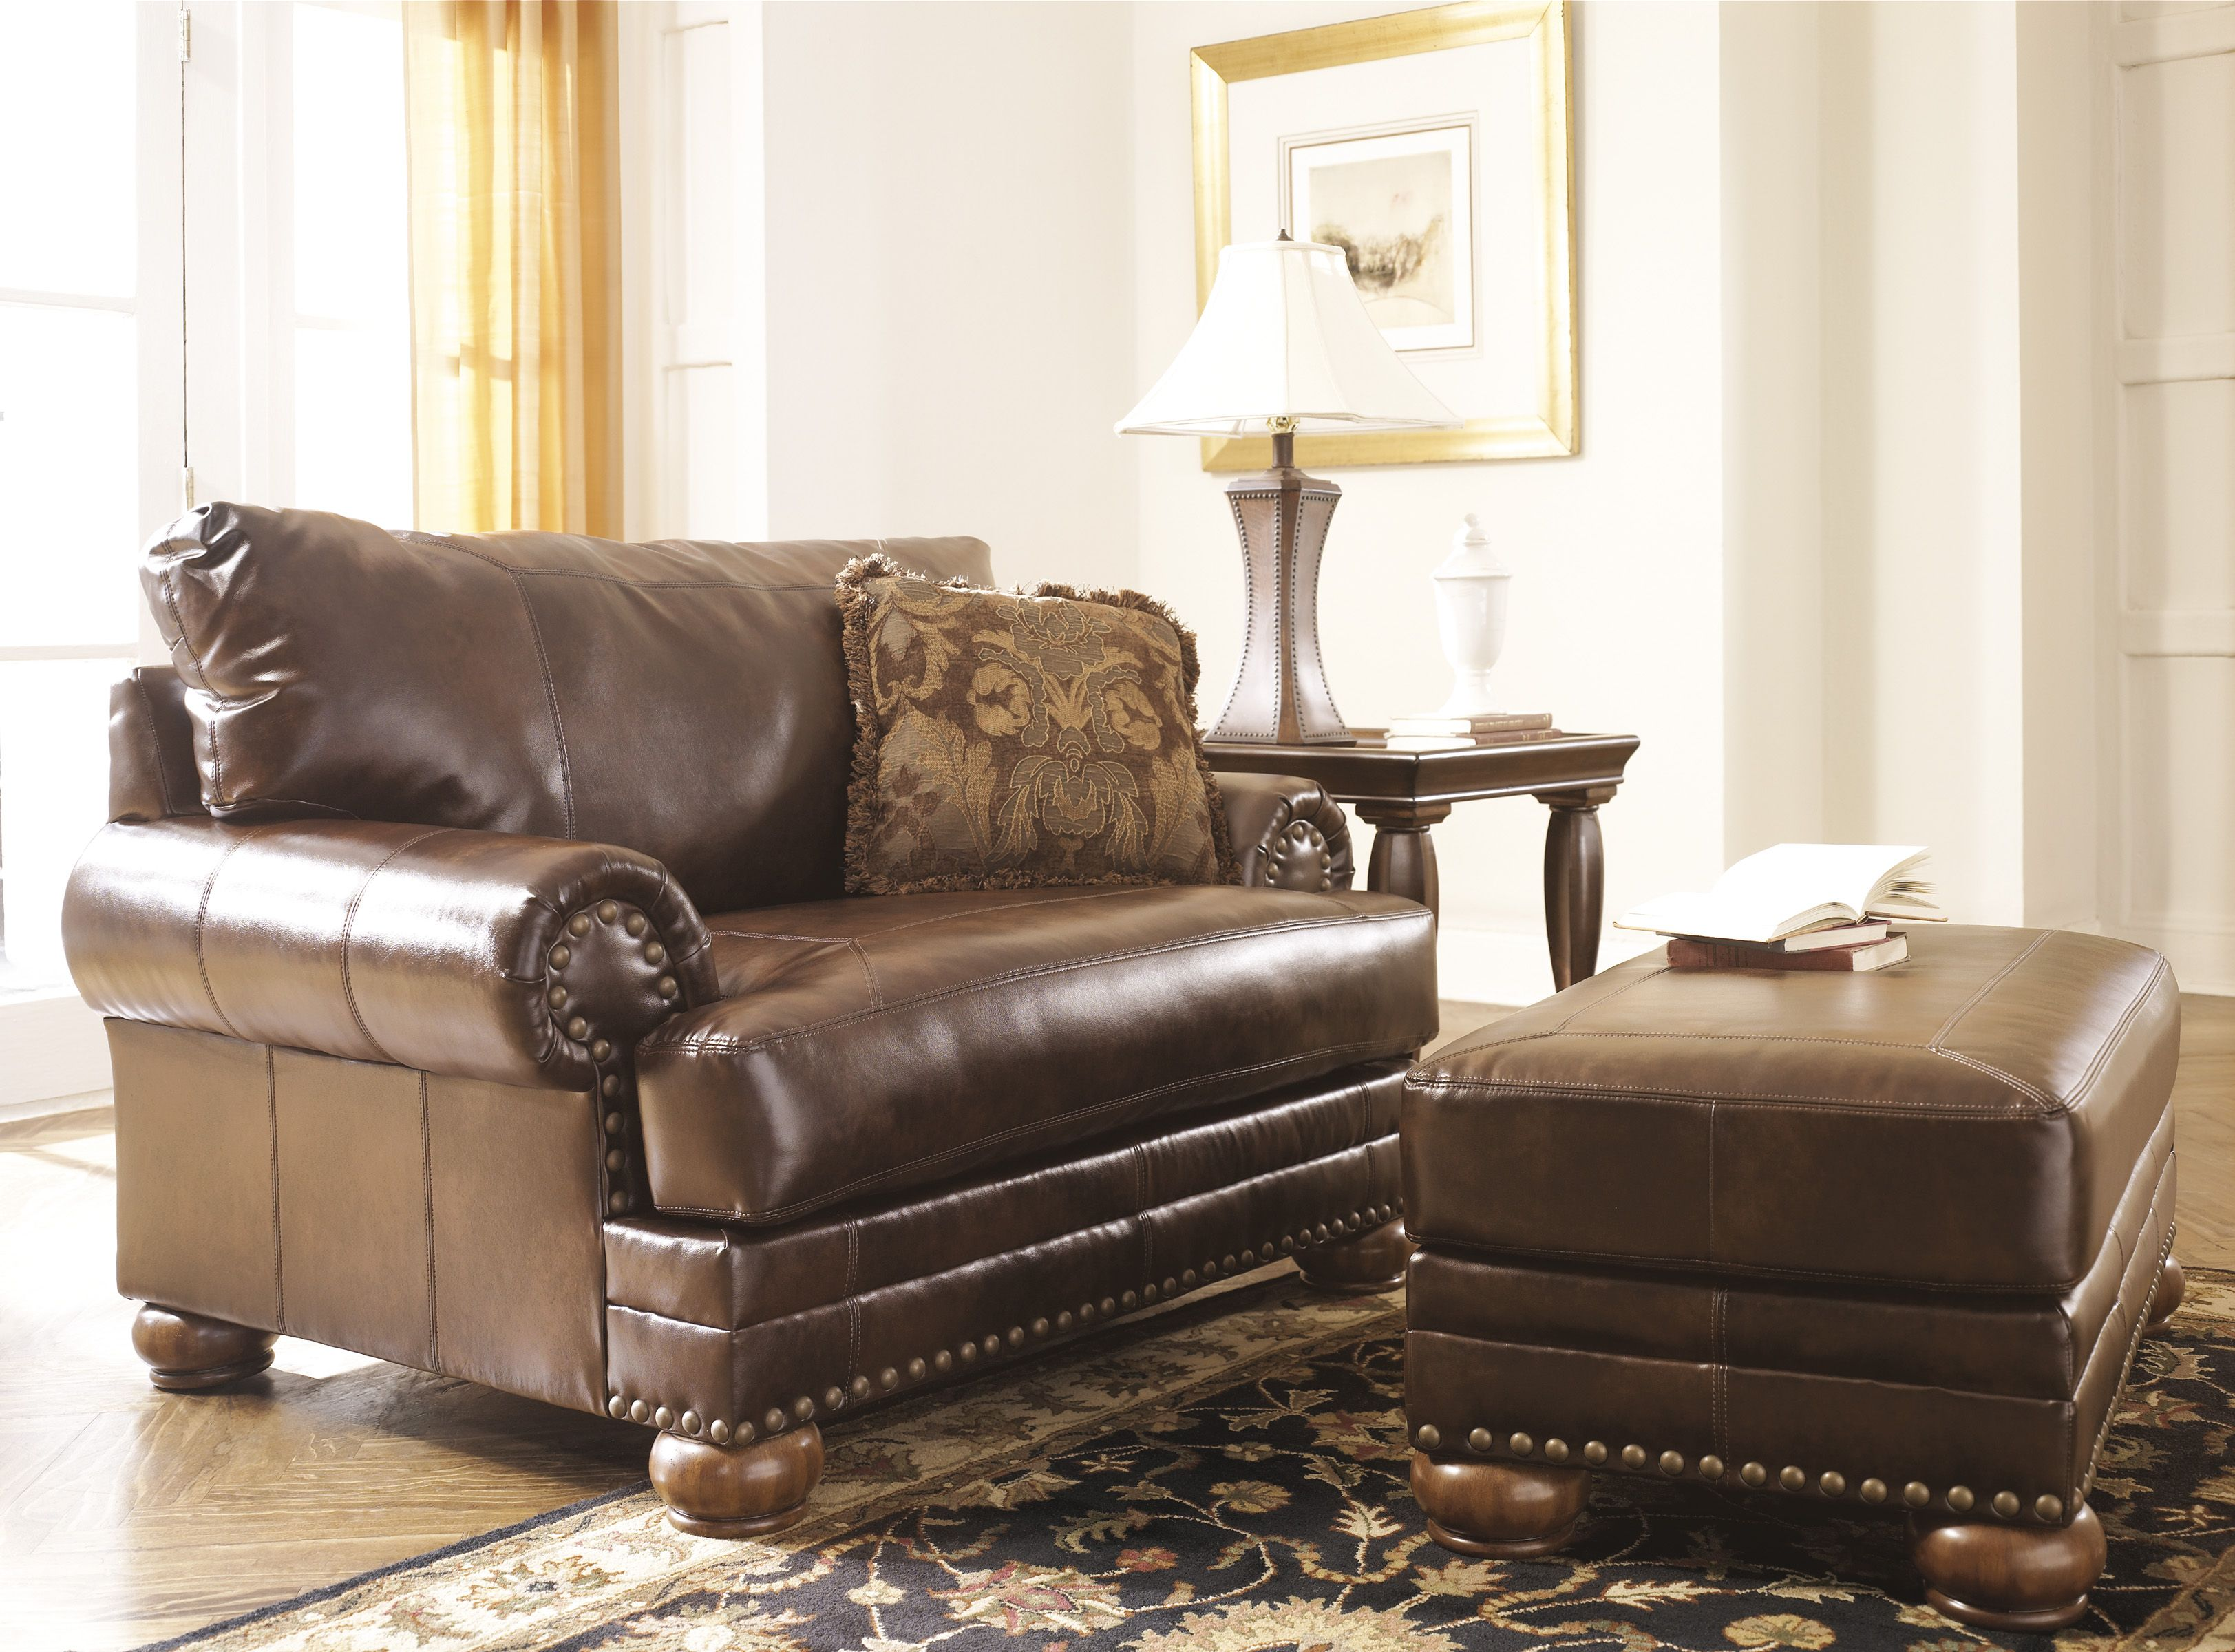 The Antique Durablend Chair 1 2 Features A Rich Traditional Design With Warm Finished Bun Feet And N Chair And A Half Furniture Chair Ashley Furniture Chairs